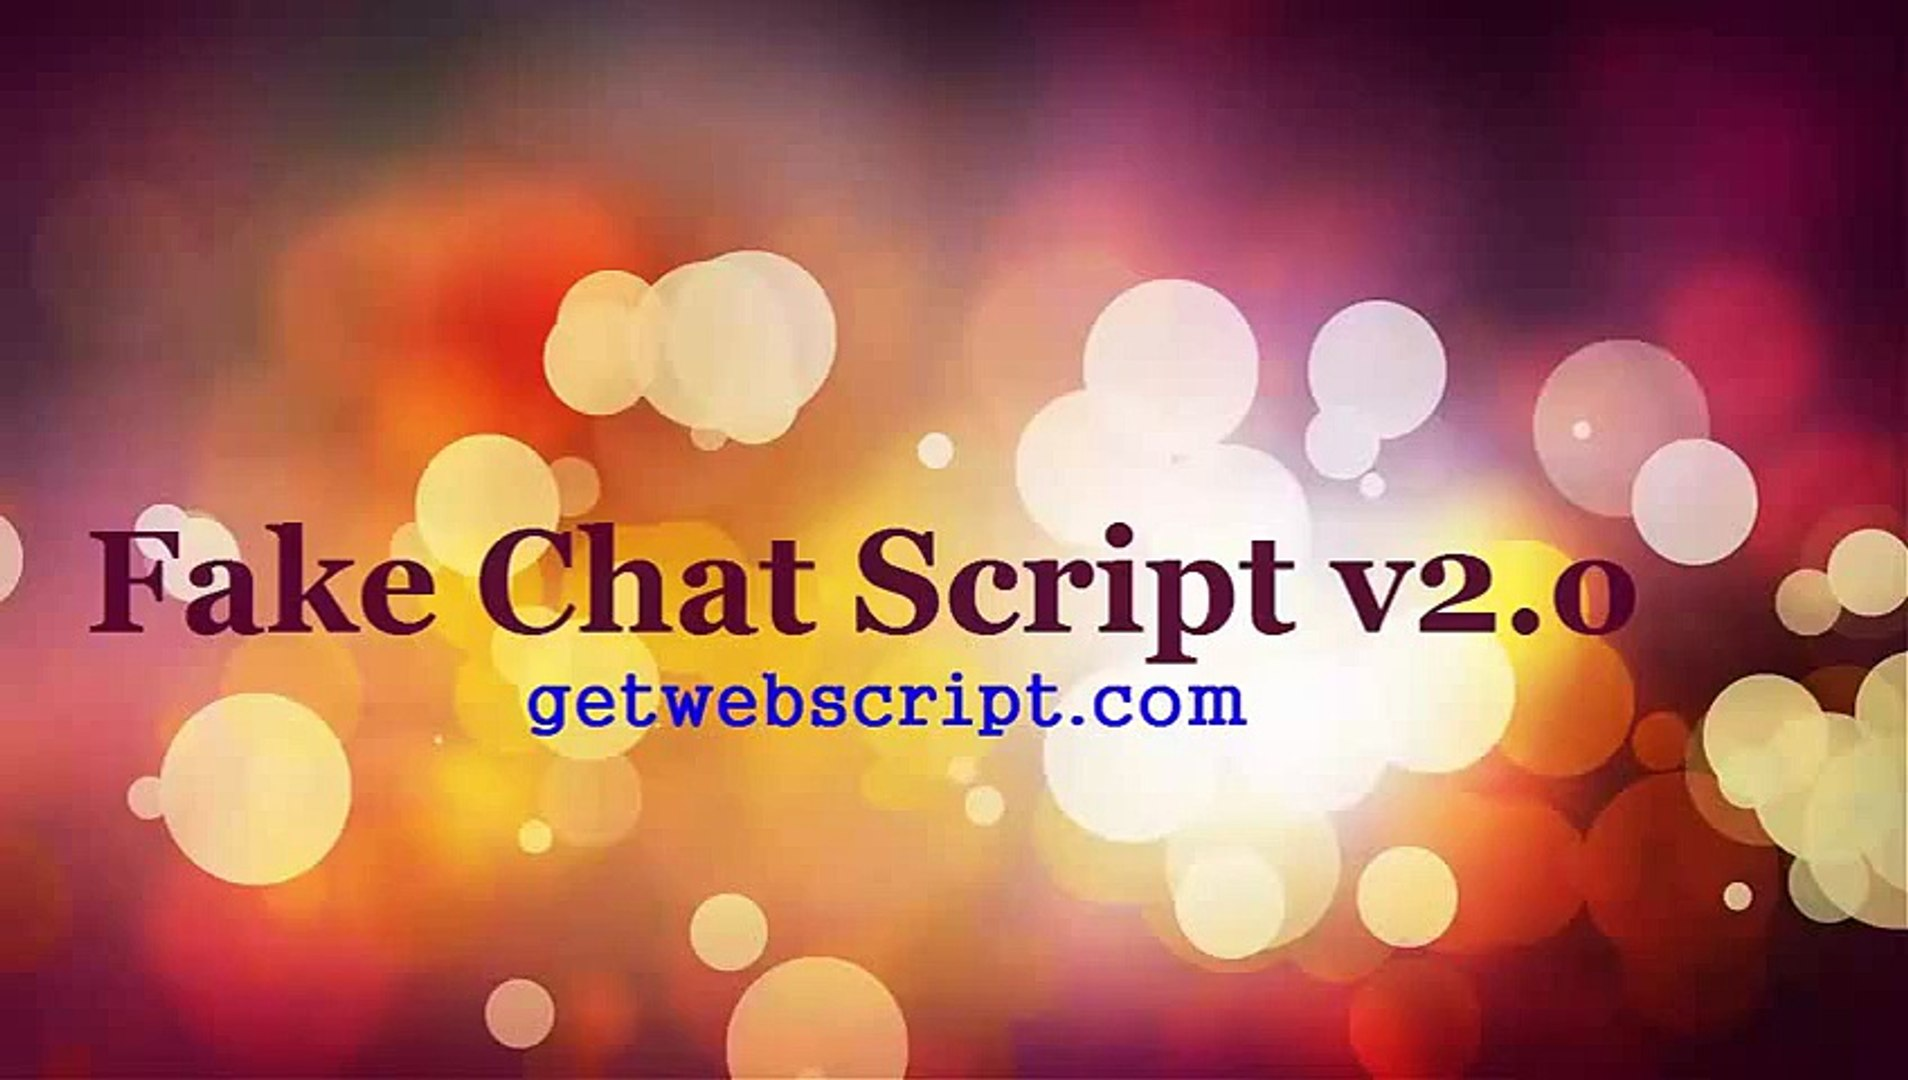 [Tutorial] -creating web chatting Scripts in php